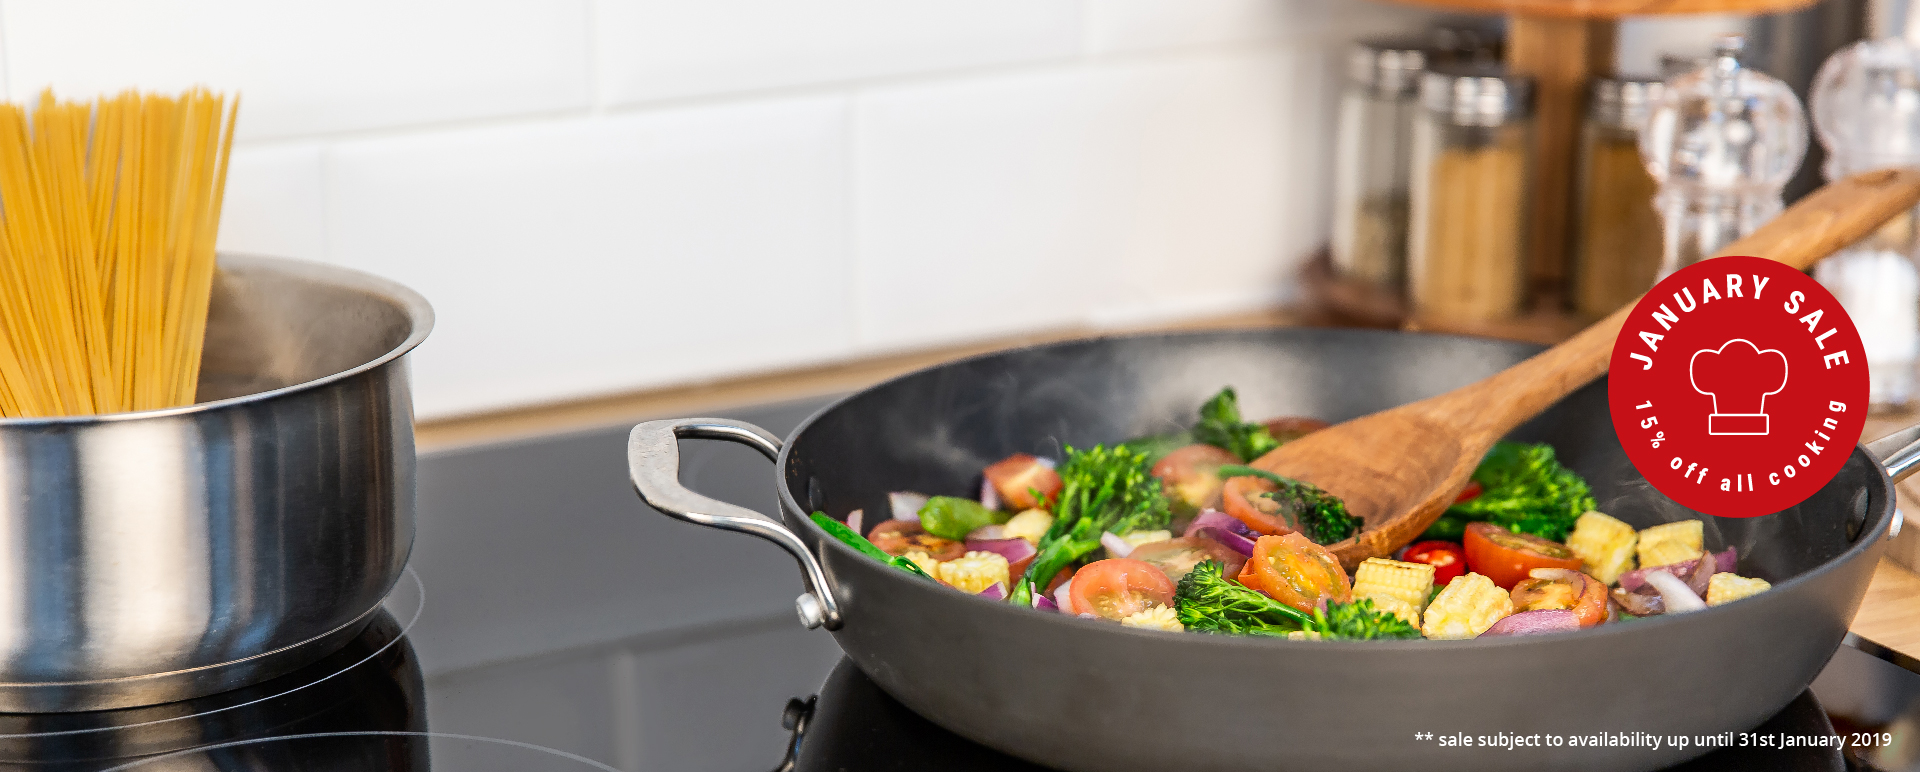 cooking-banner